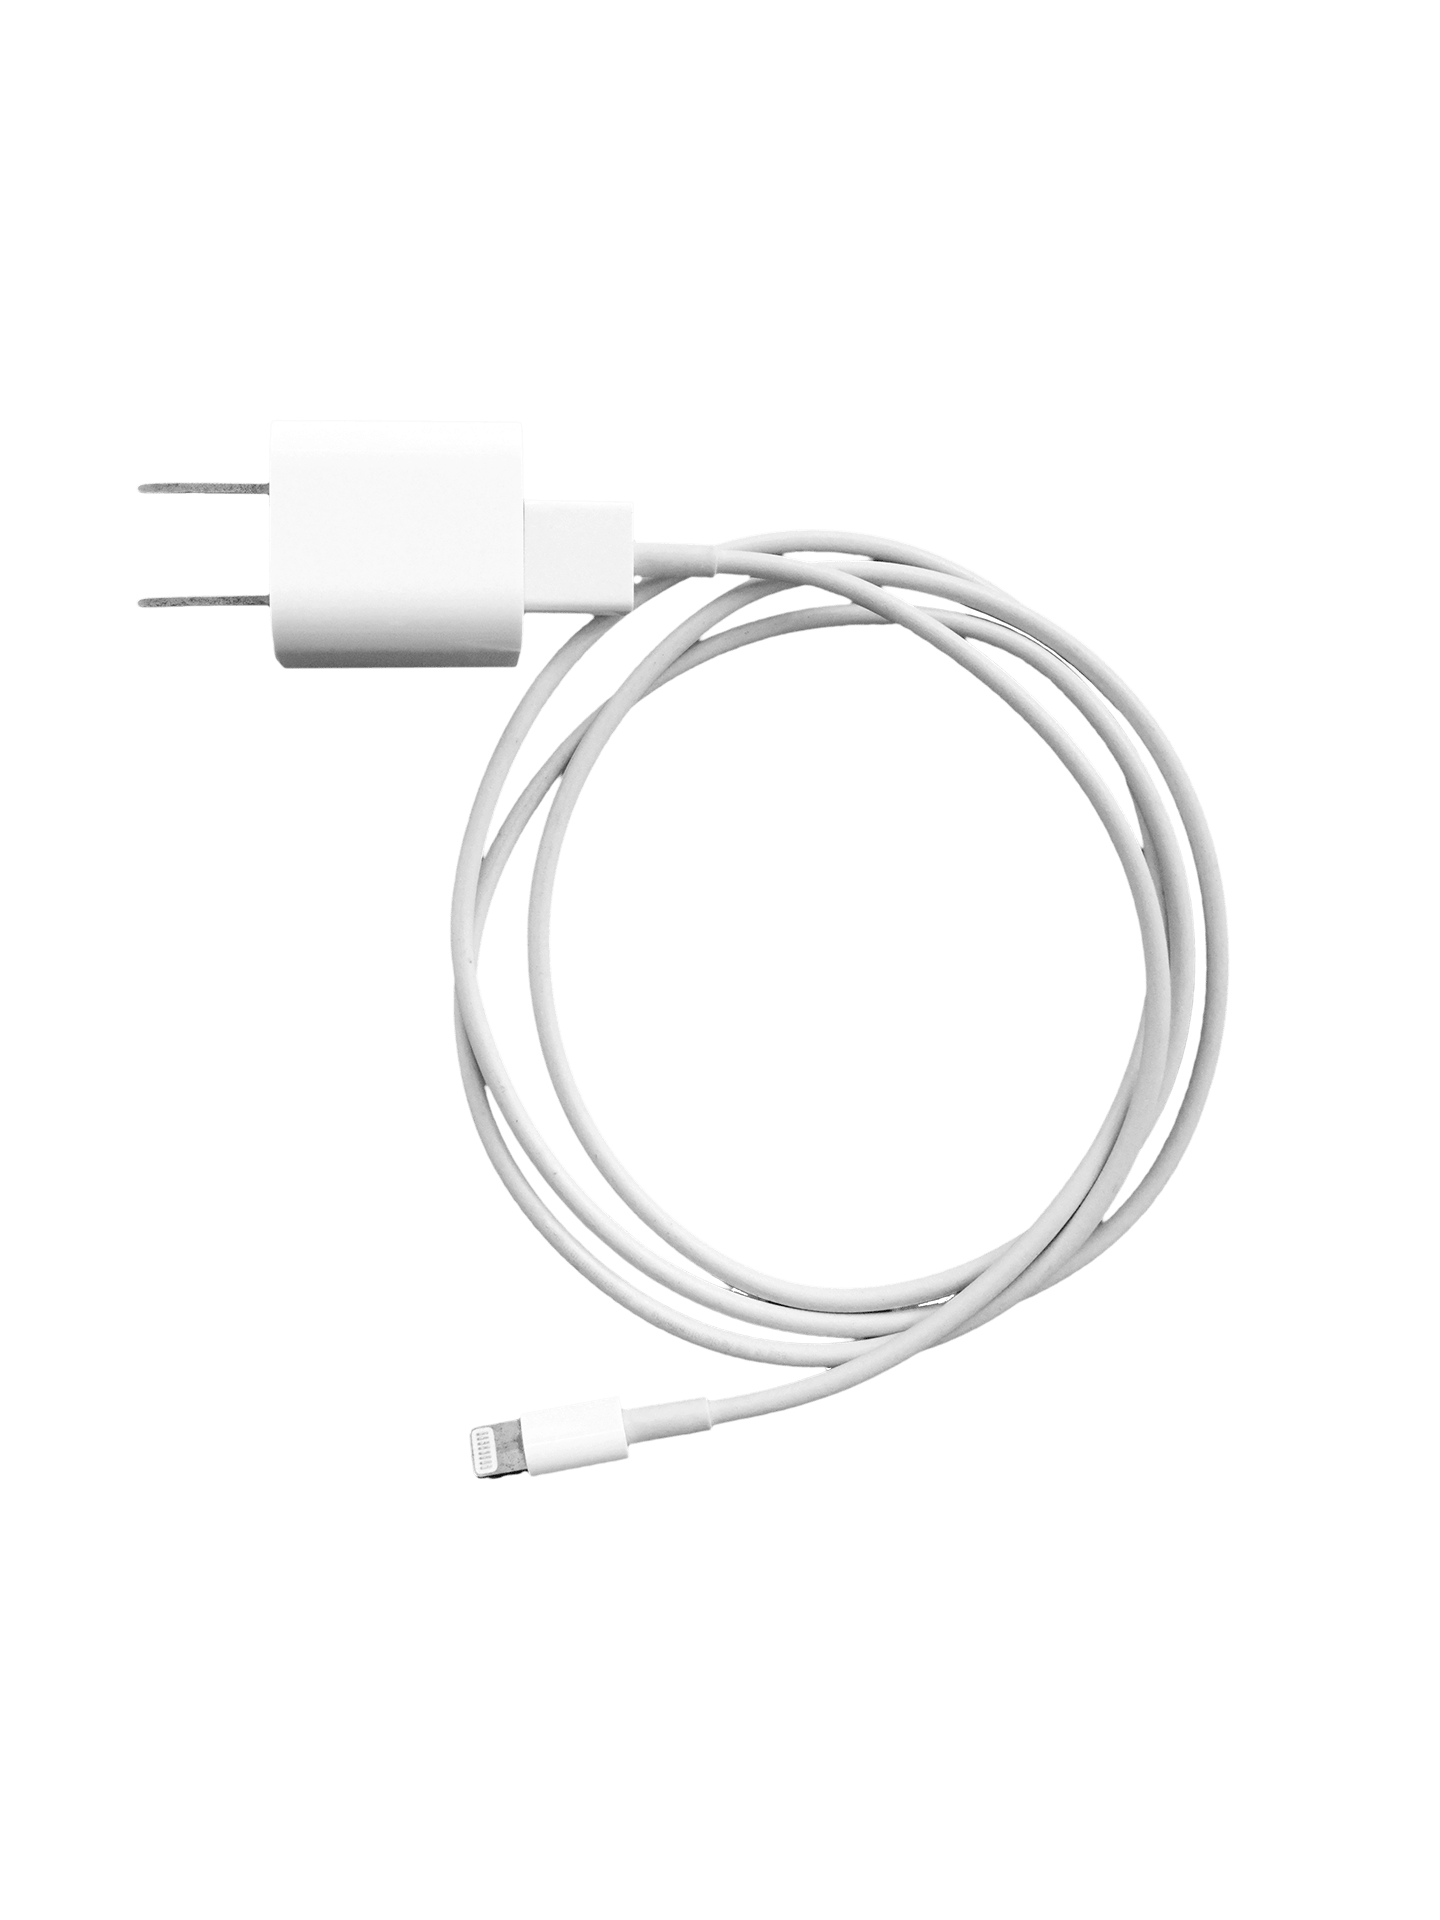 Apple 5w Usb Power Adapter With A Lightning Cable